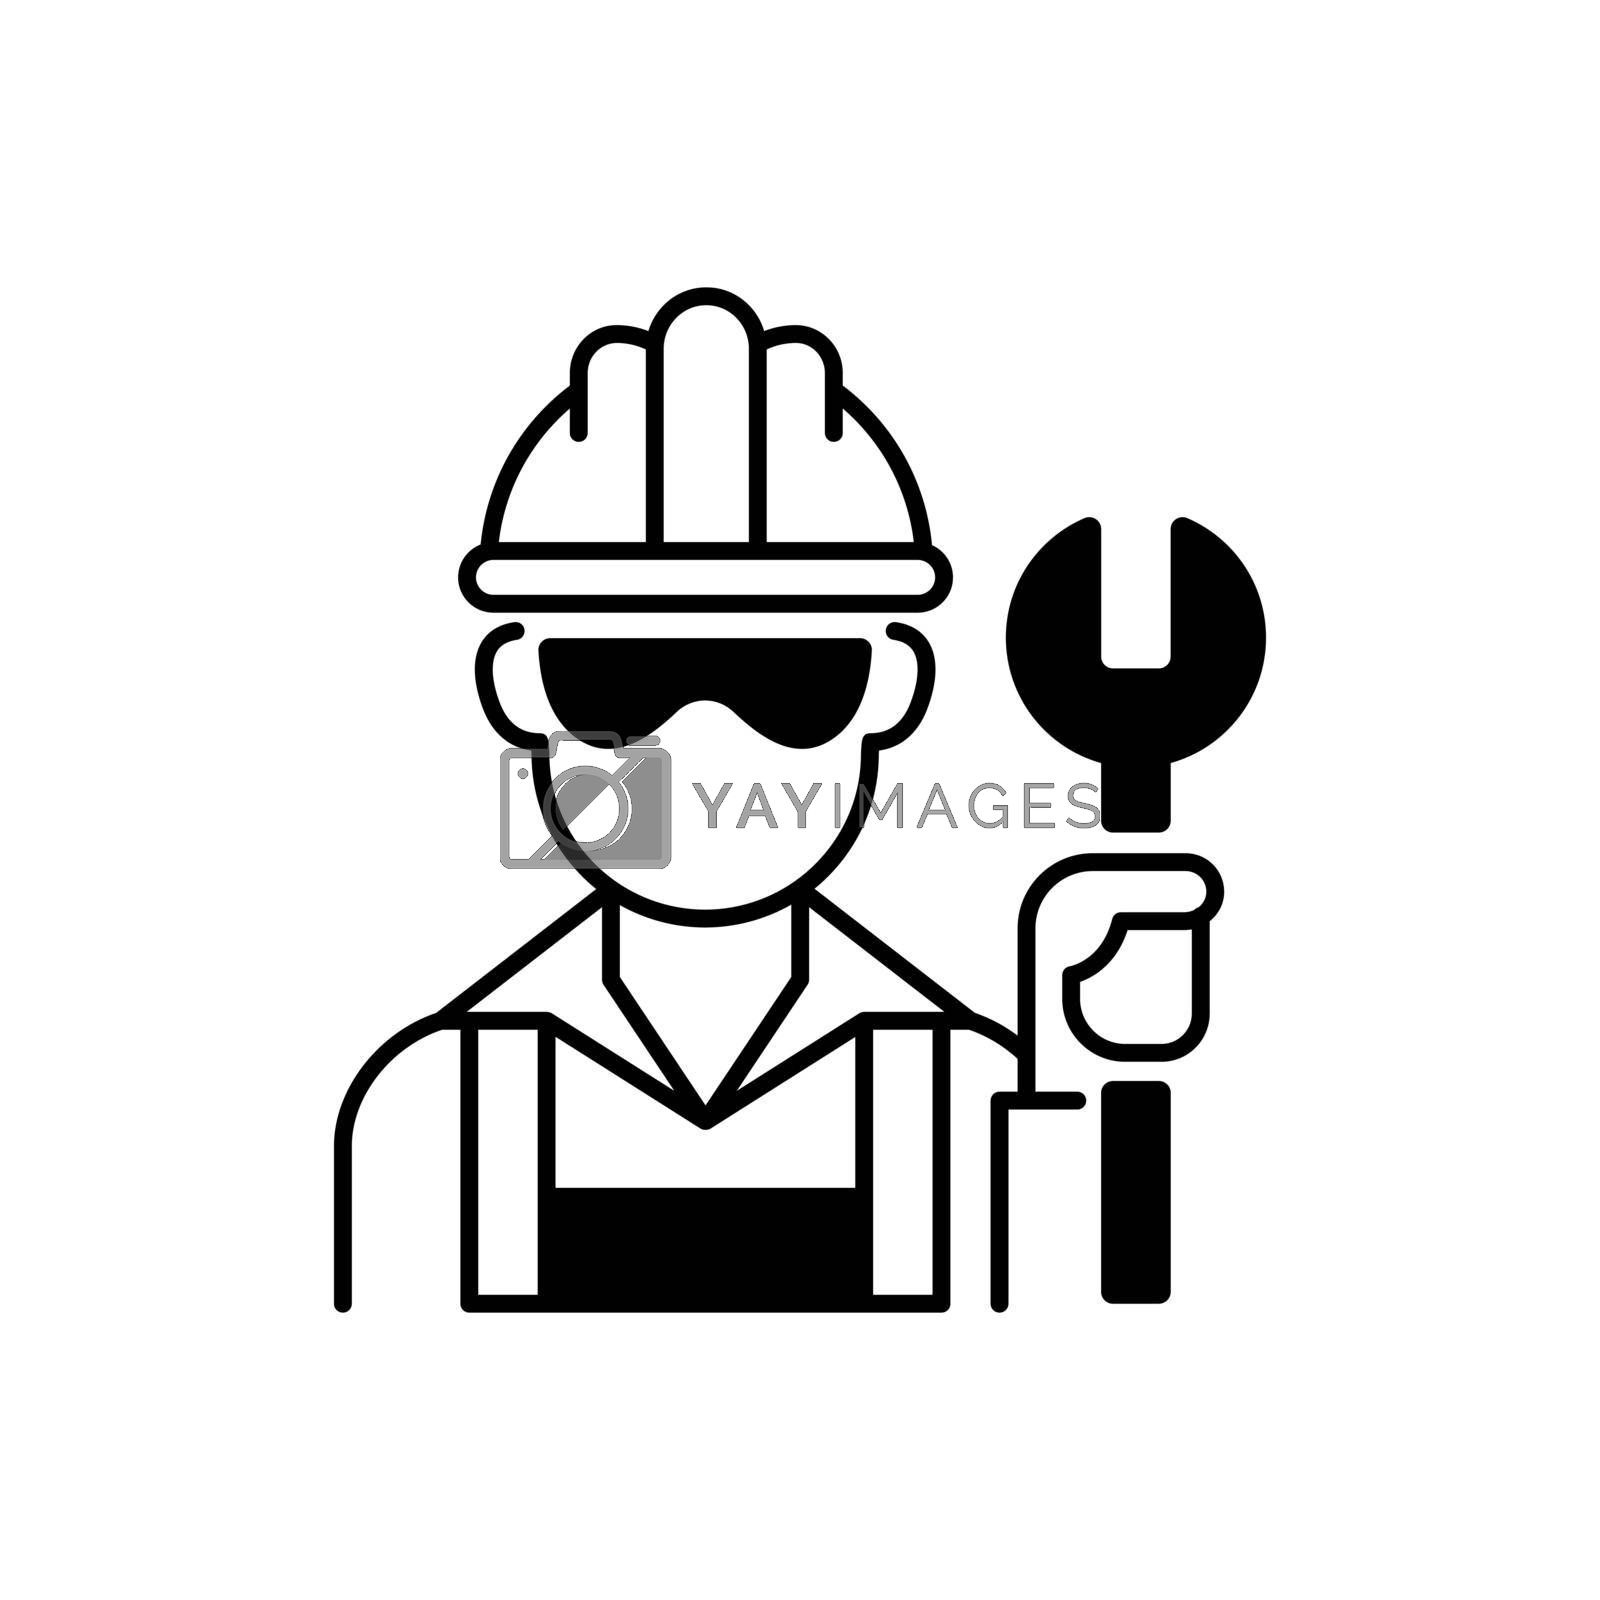 Blue collar worker black linear icon. Repairman with wrench. Mechanic with tool for construction work. Profession, occupation. Social class. Outline symbol on white space. Vector isolated illustration